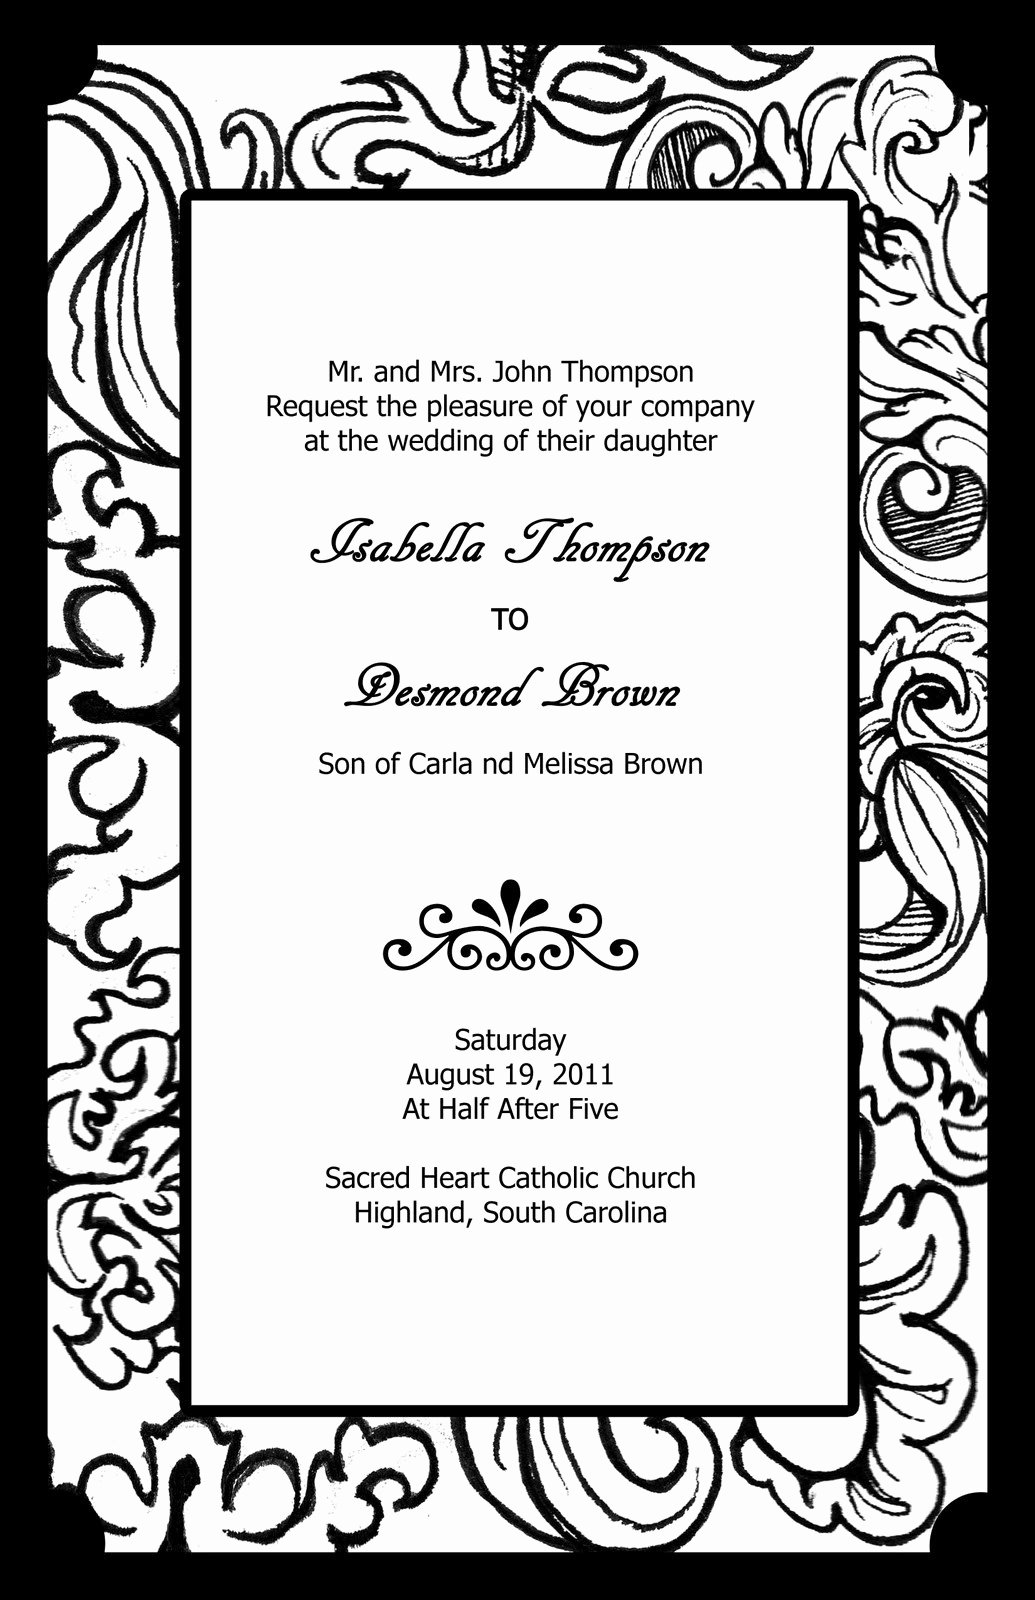 Black and White Invitation Template Lovely Free Black and White Wedding Invitation Templates